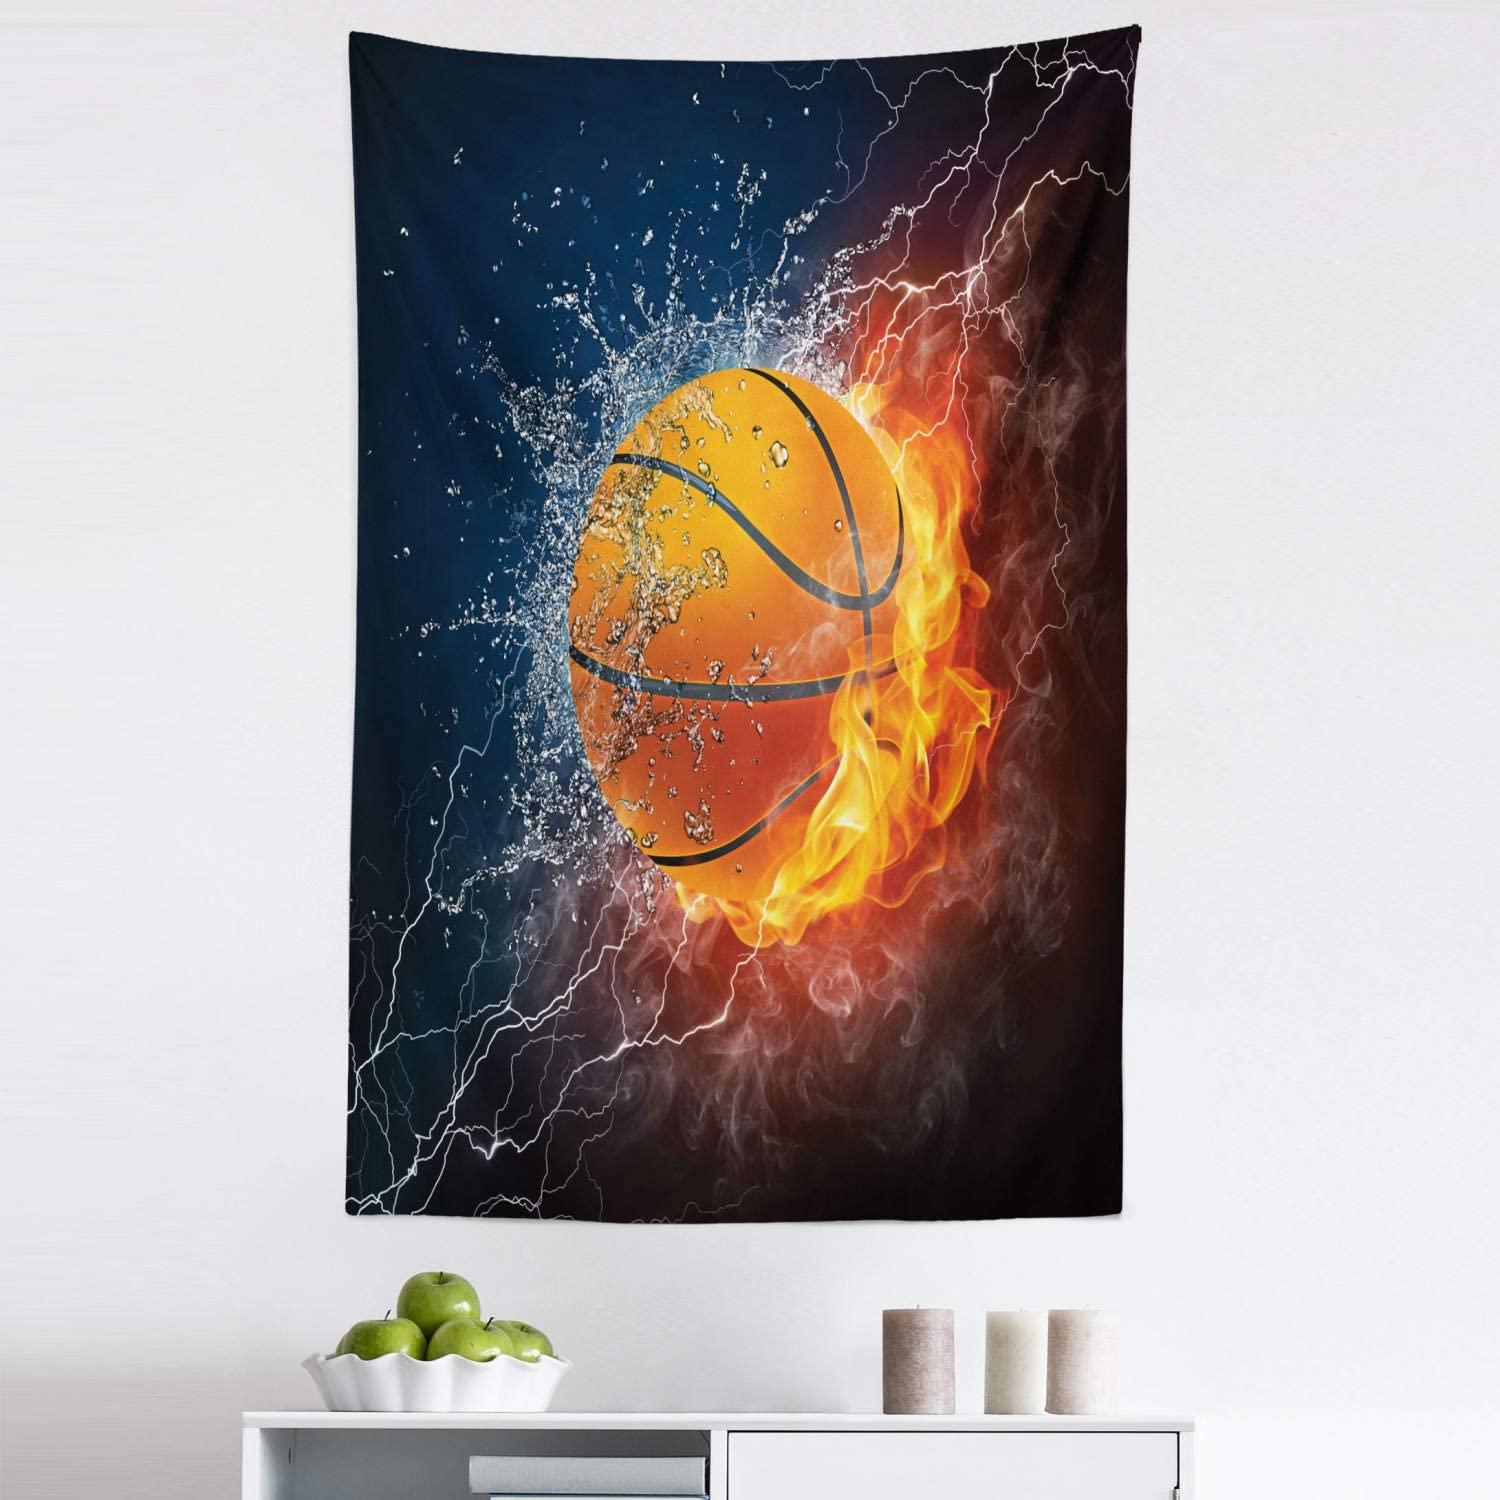 """Lunarable Sports Tapestry, Basketball Ball on Fire and Water Flame Splashing Thunder Lightning, Fabric Wall Hanging Decor for Bedroom Living Room Dorm, 30"""" X 45"""", Blue Orange"""